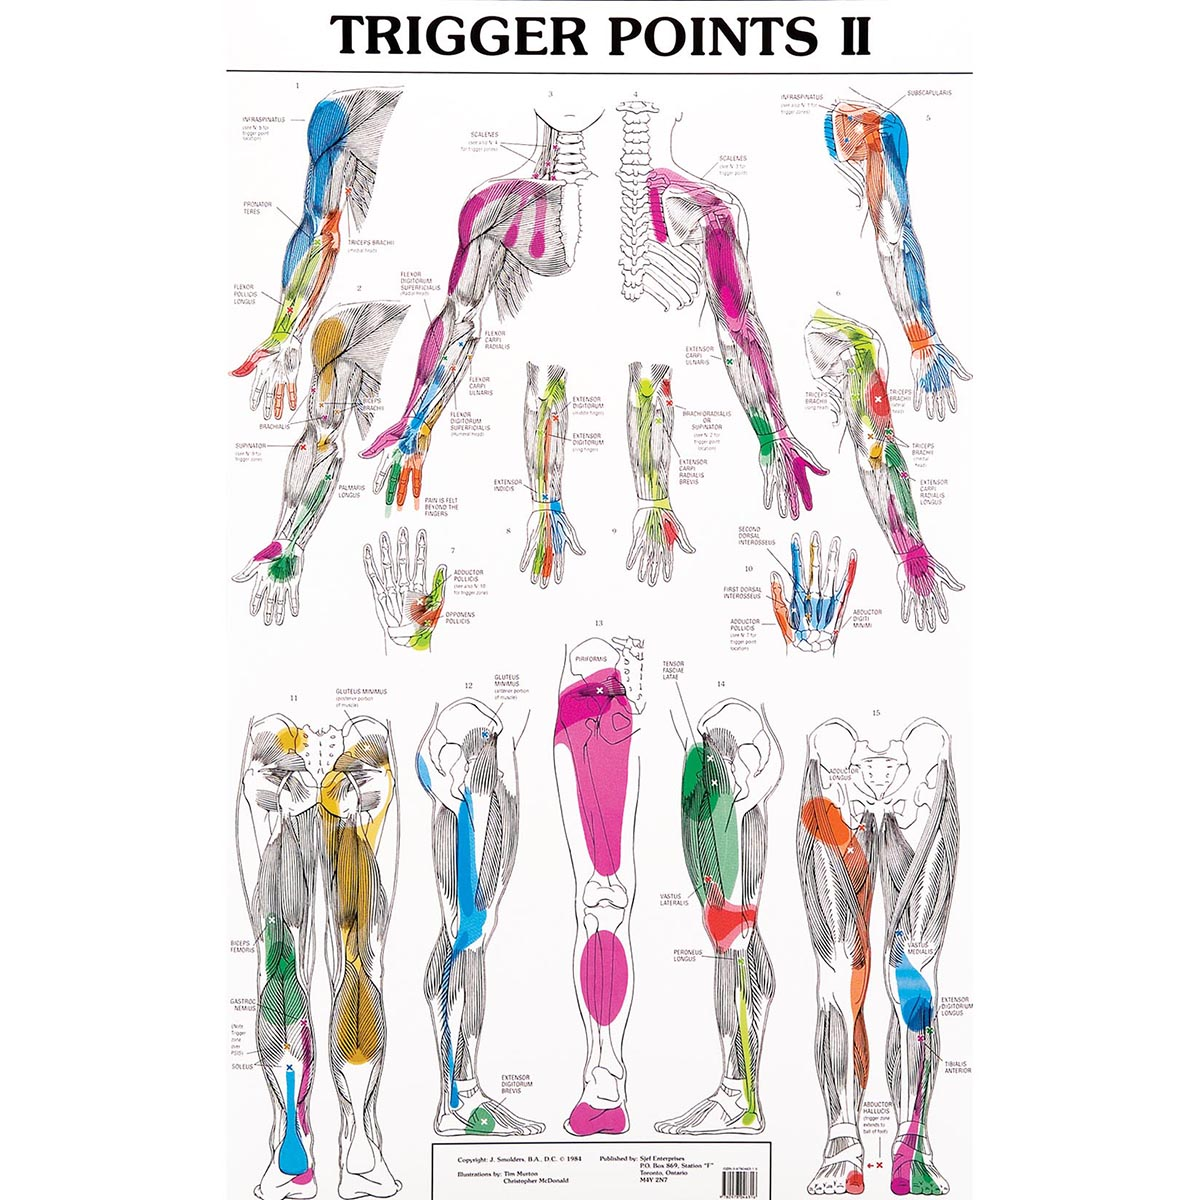 trigger-points-chart-massage-therapy.jpg